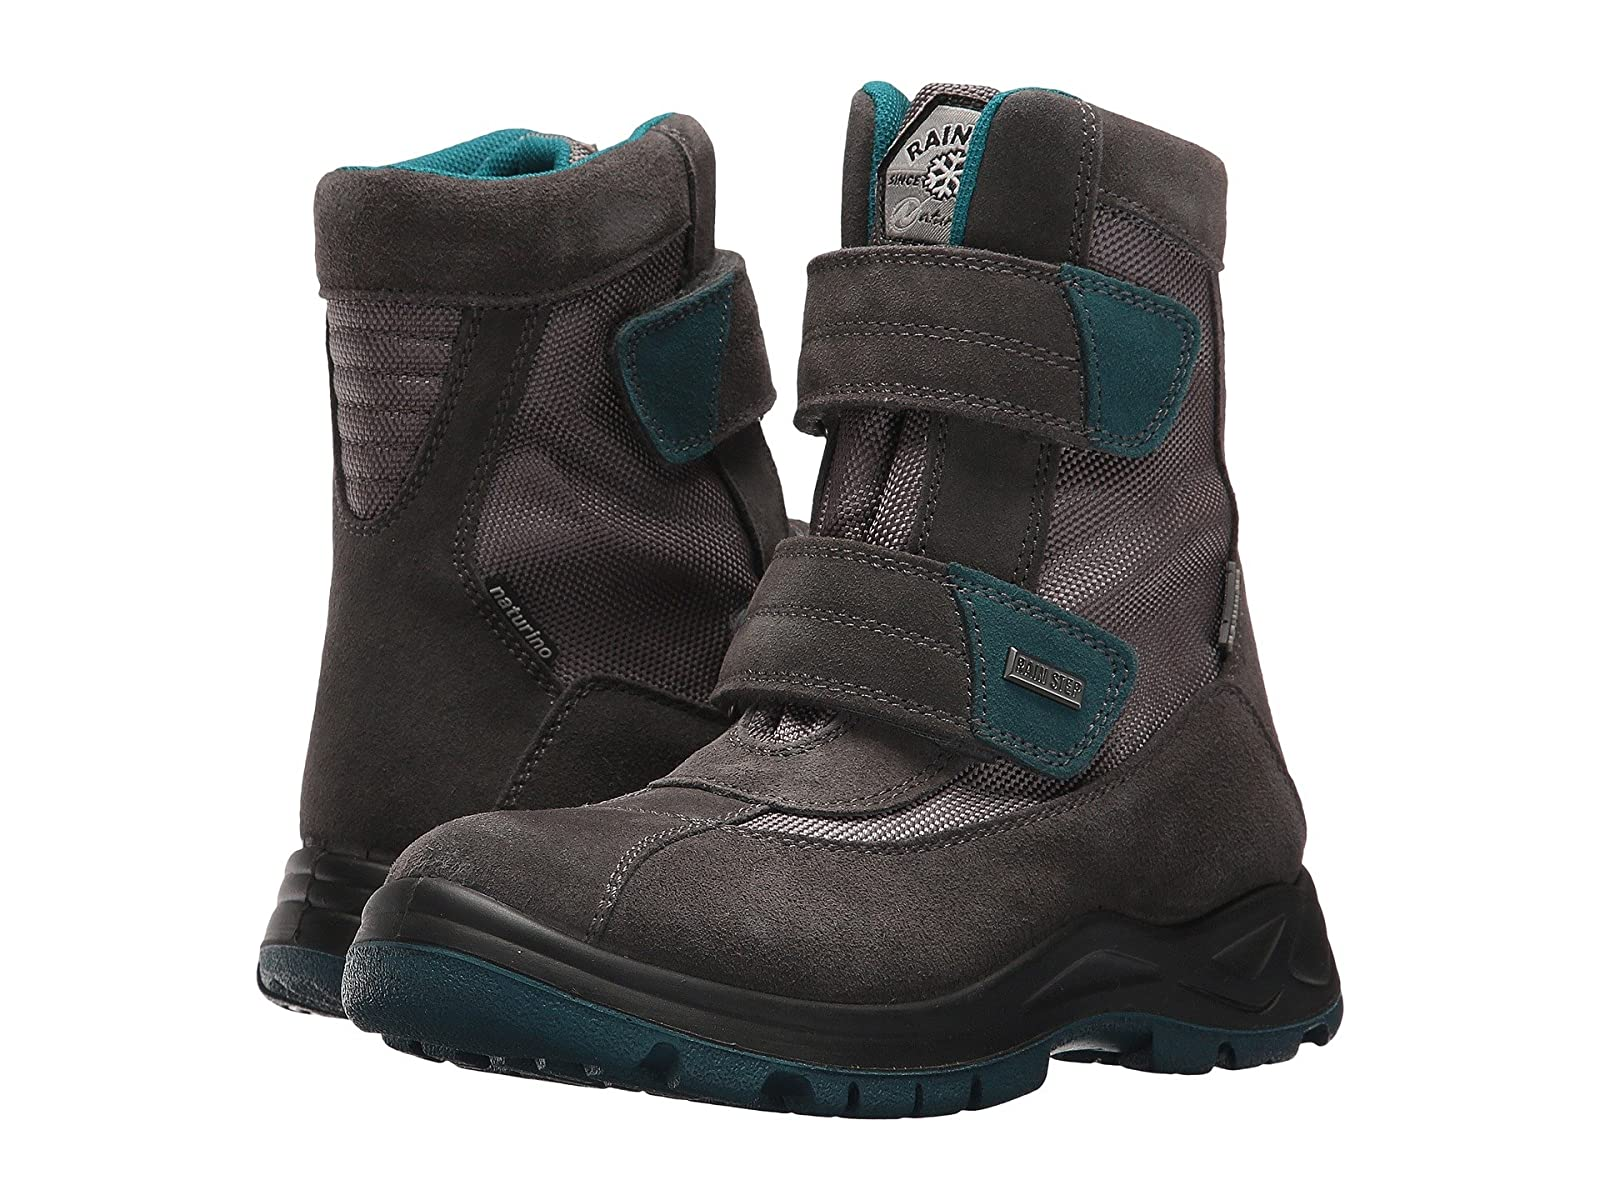 Naturino Barents AW17 (Little Kid/Big Kid)Cheap and distinctive eye-catching shoes